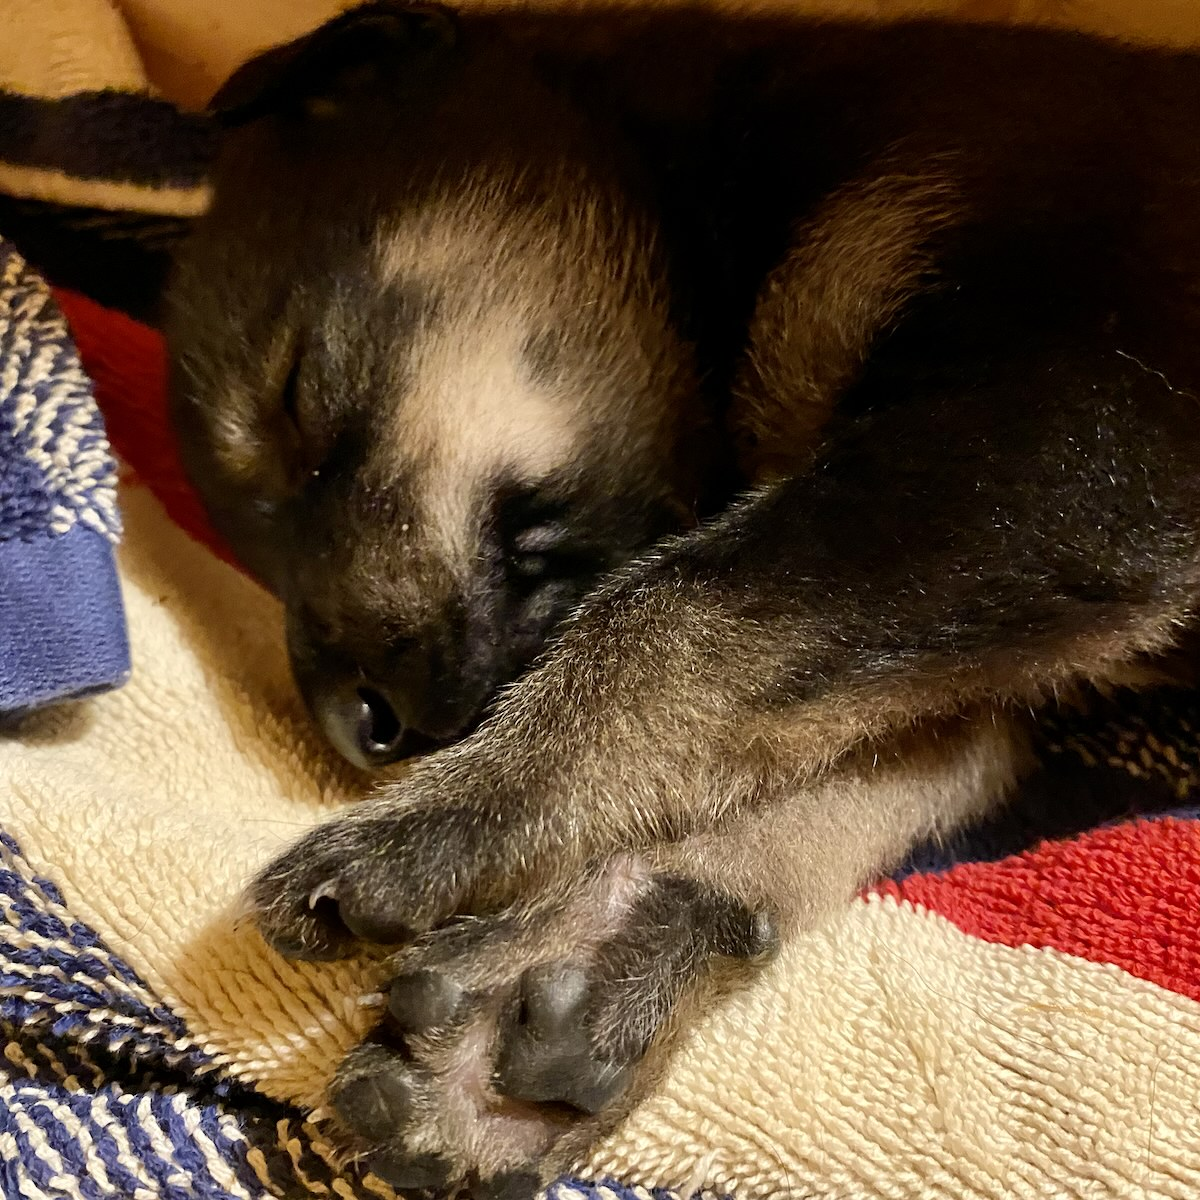 A tiny puppy sleeps soundly on some blankets